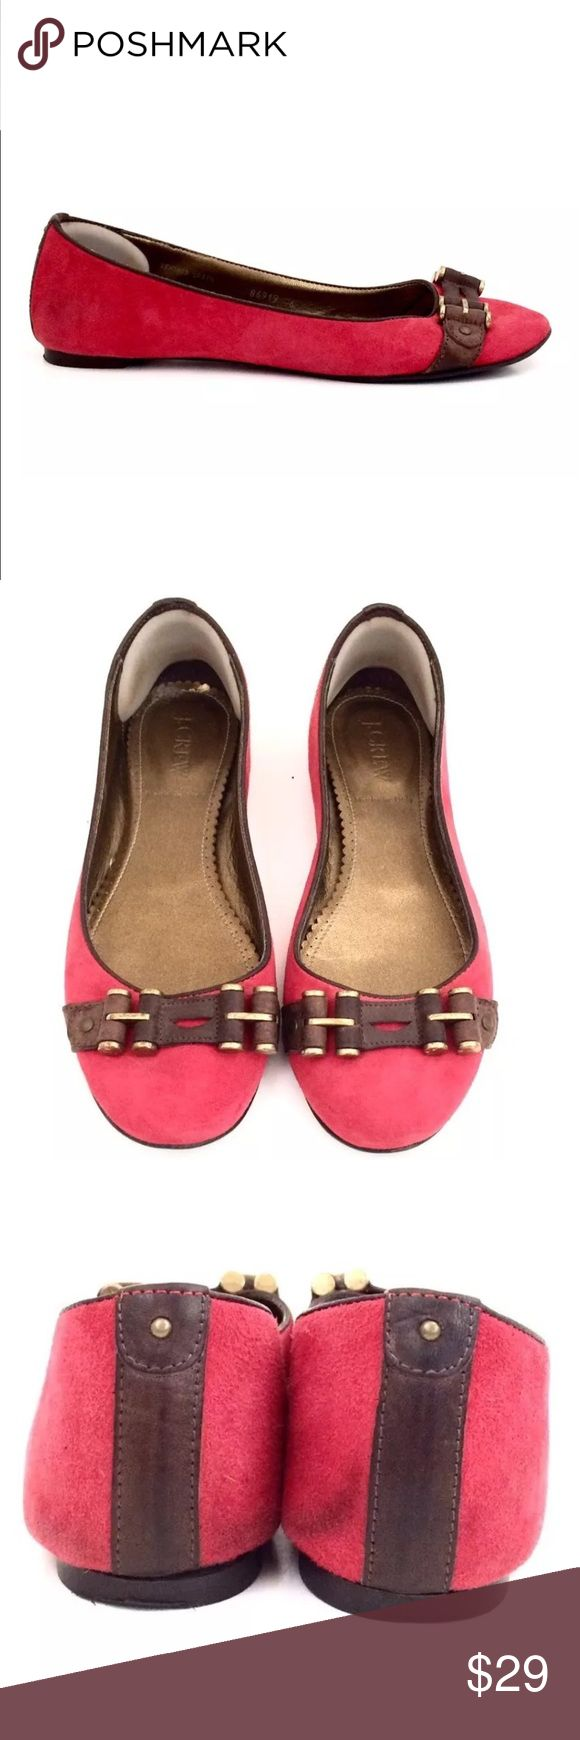 J. Crew Red Suede, Leather Ballet Flats Size 6 J. Crew Red Suede, Leather Ballet Flats Size 6.  Padded heel, brown leather and brass embellished toe. Small marks on left and right heel. Please see photos and feel free to ask questions. Thanks for looking! J. Crew Shoes Flats & Loafers